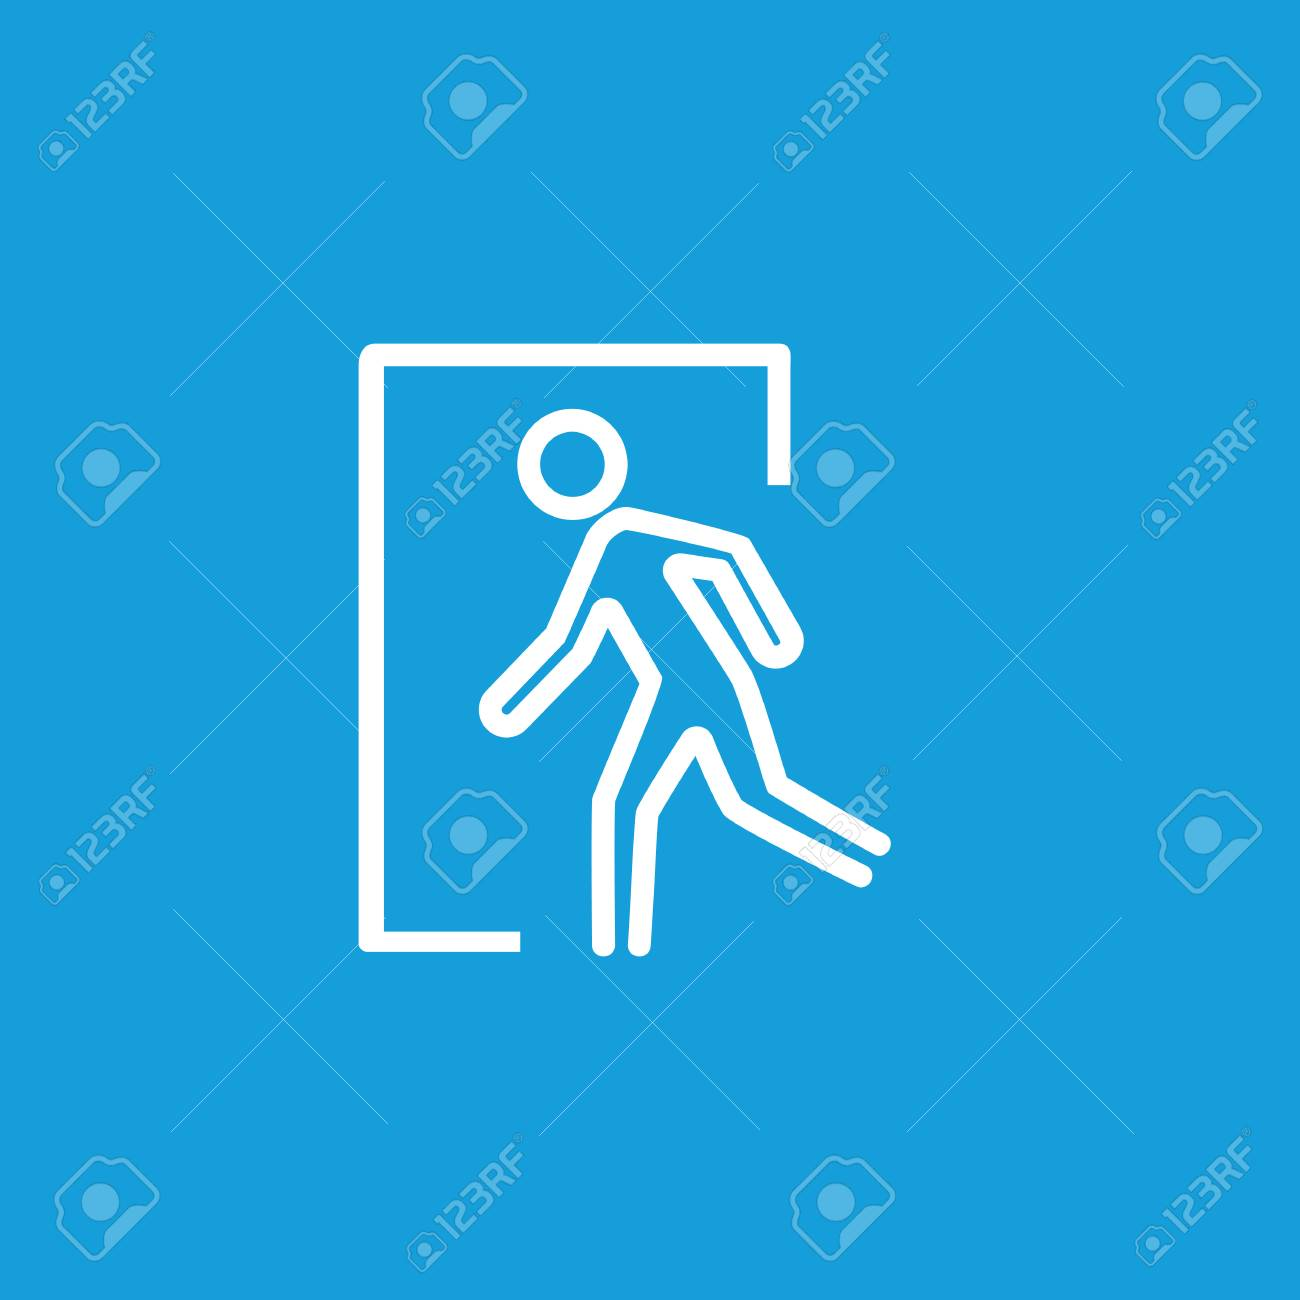 Emergency Exit Icon On Blue Background Royalty Cliparts 1300x1300